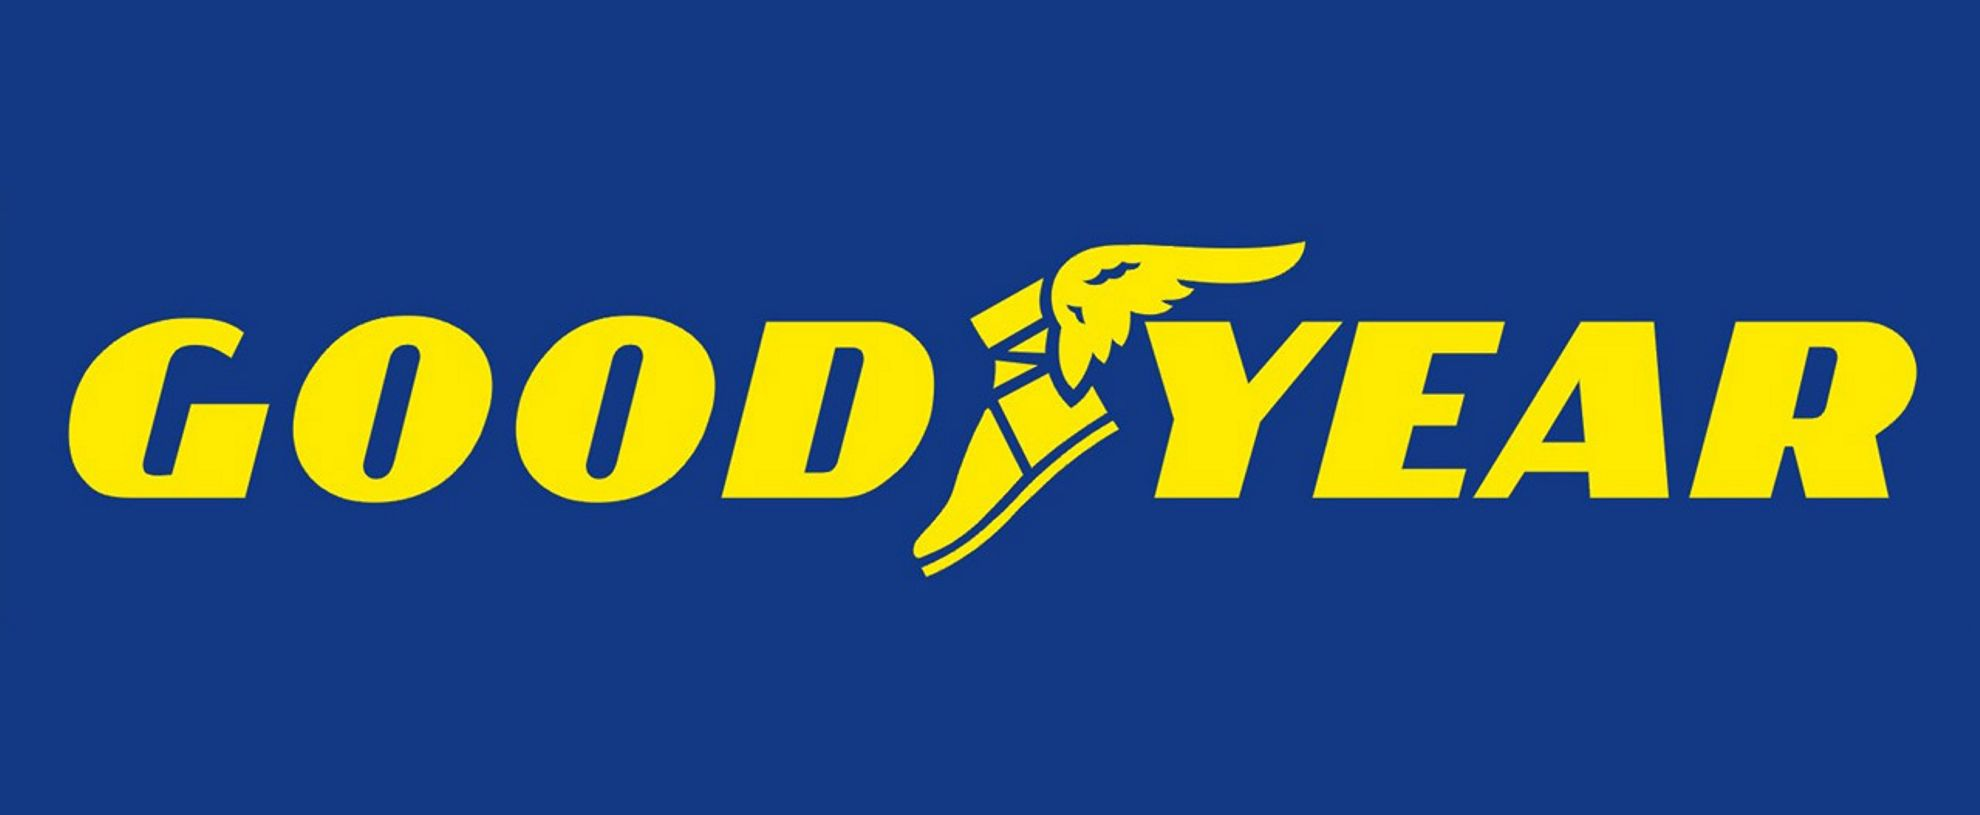 Goodyear Racing Tires >> GOODYEAR TYRES CELEBRATES 60TH ANNIVERSARY SUPPLYING TIRES TO NASCAR